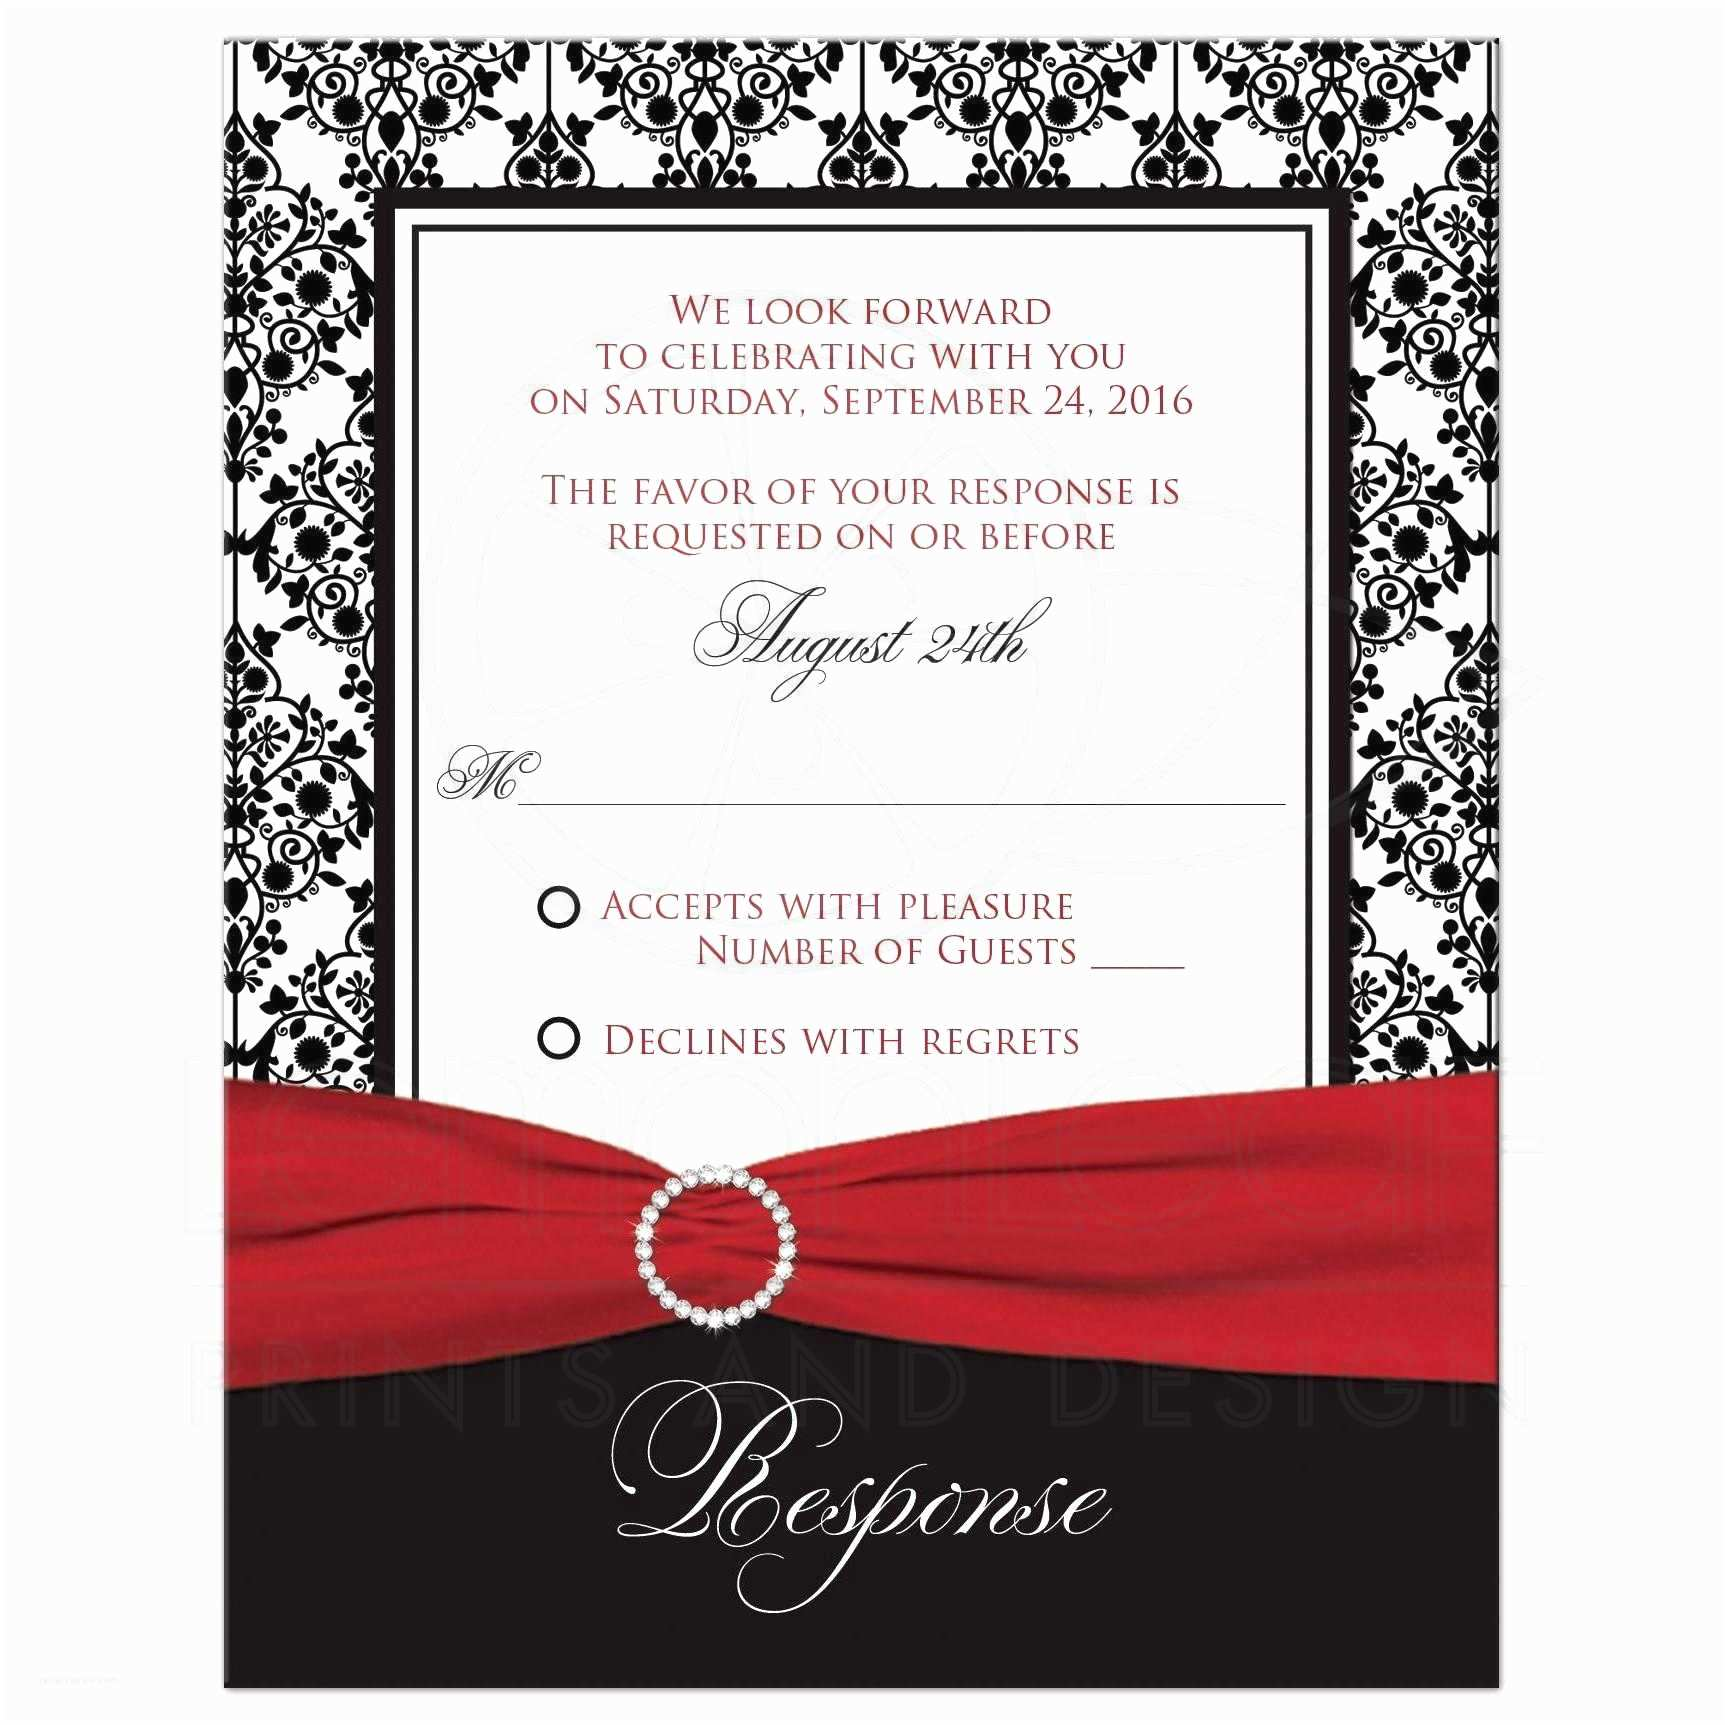 Ribbon Brooch Wedding Invitation Wedding Response Card Black White Damask Printed Red Ribbon